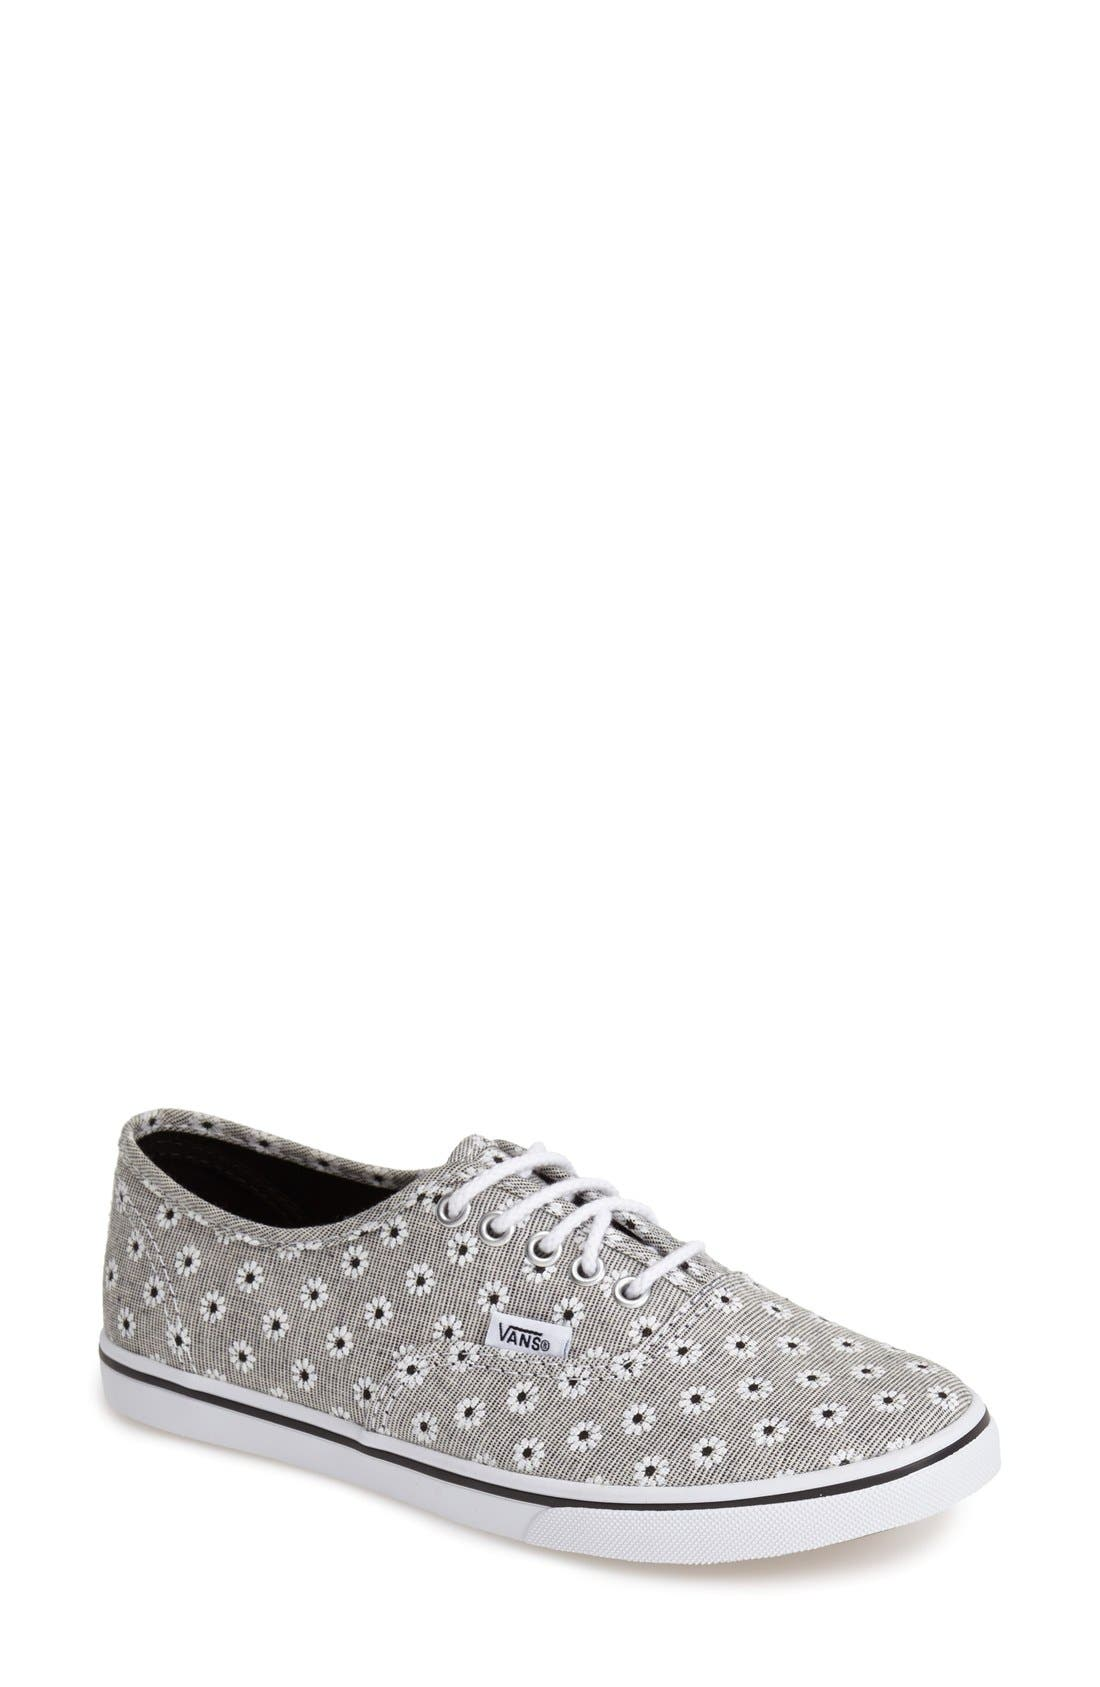 Alternate Image 1 Selected - Vans 'Authentic - Chambray' Sneaker (Women)